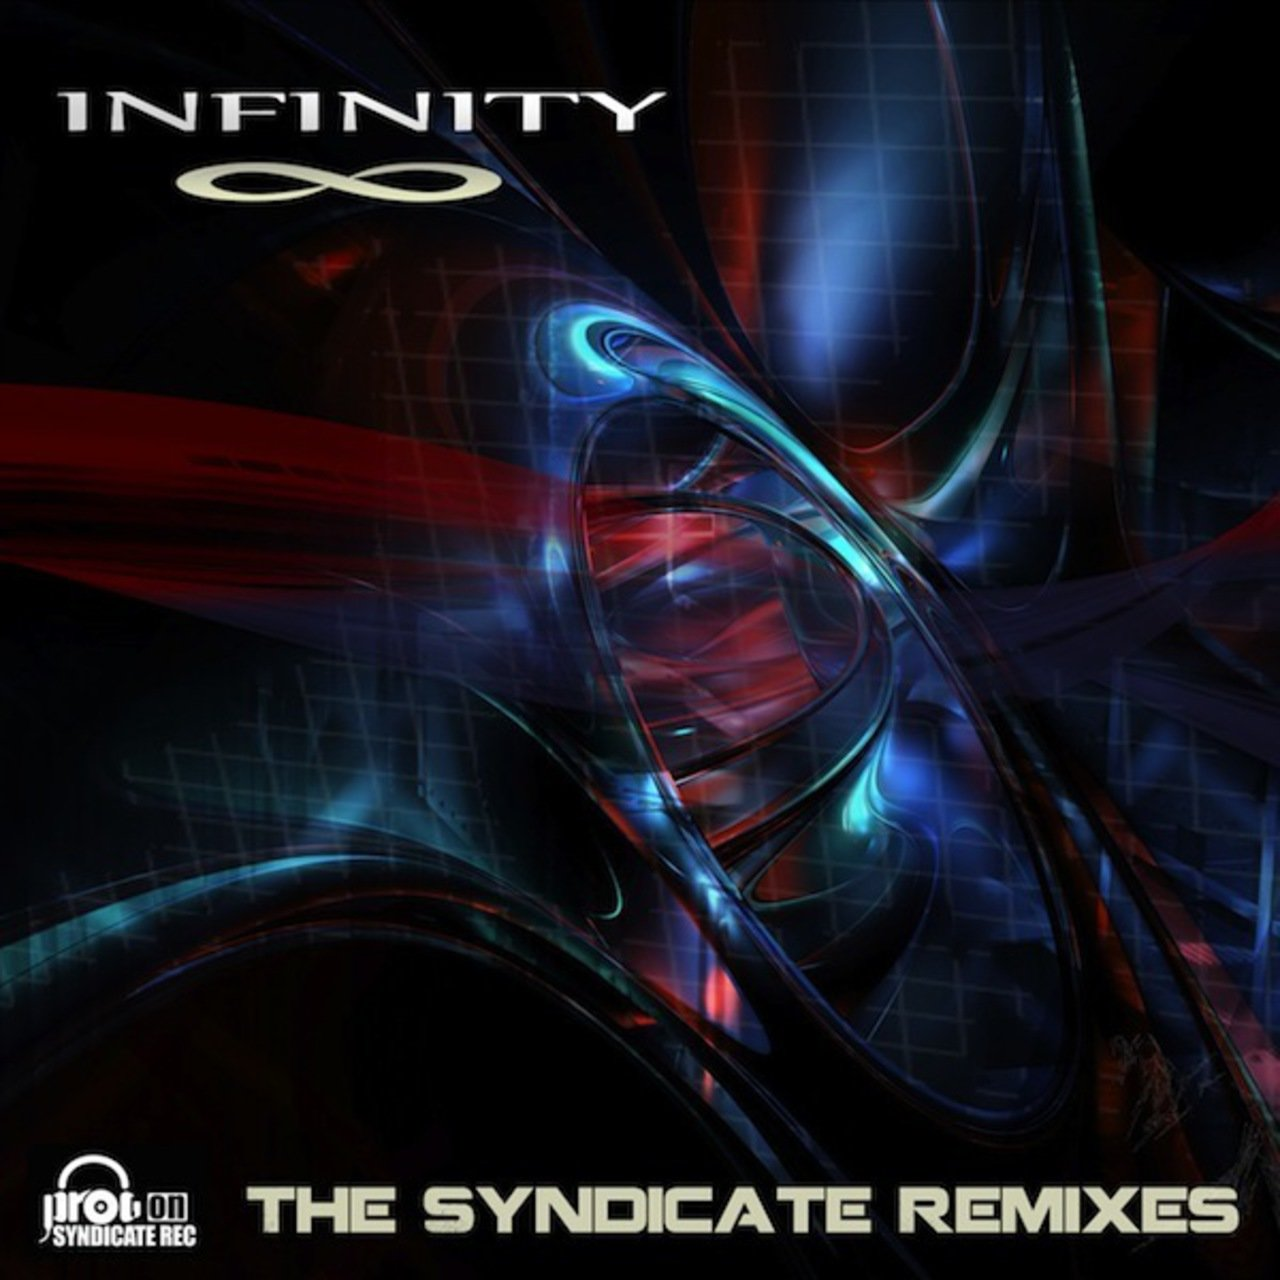 The Syndicate Remixes